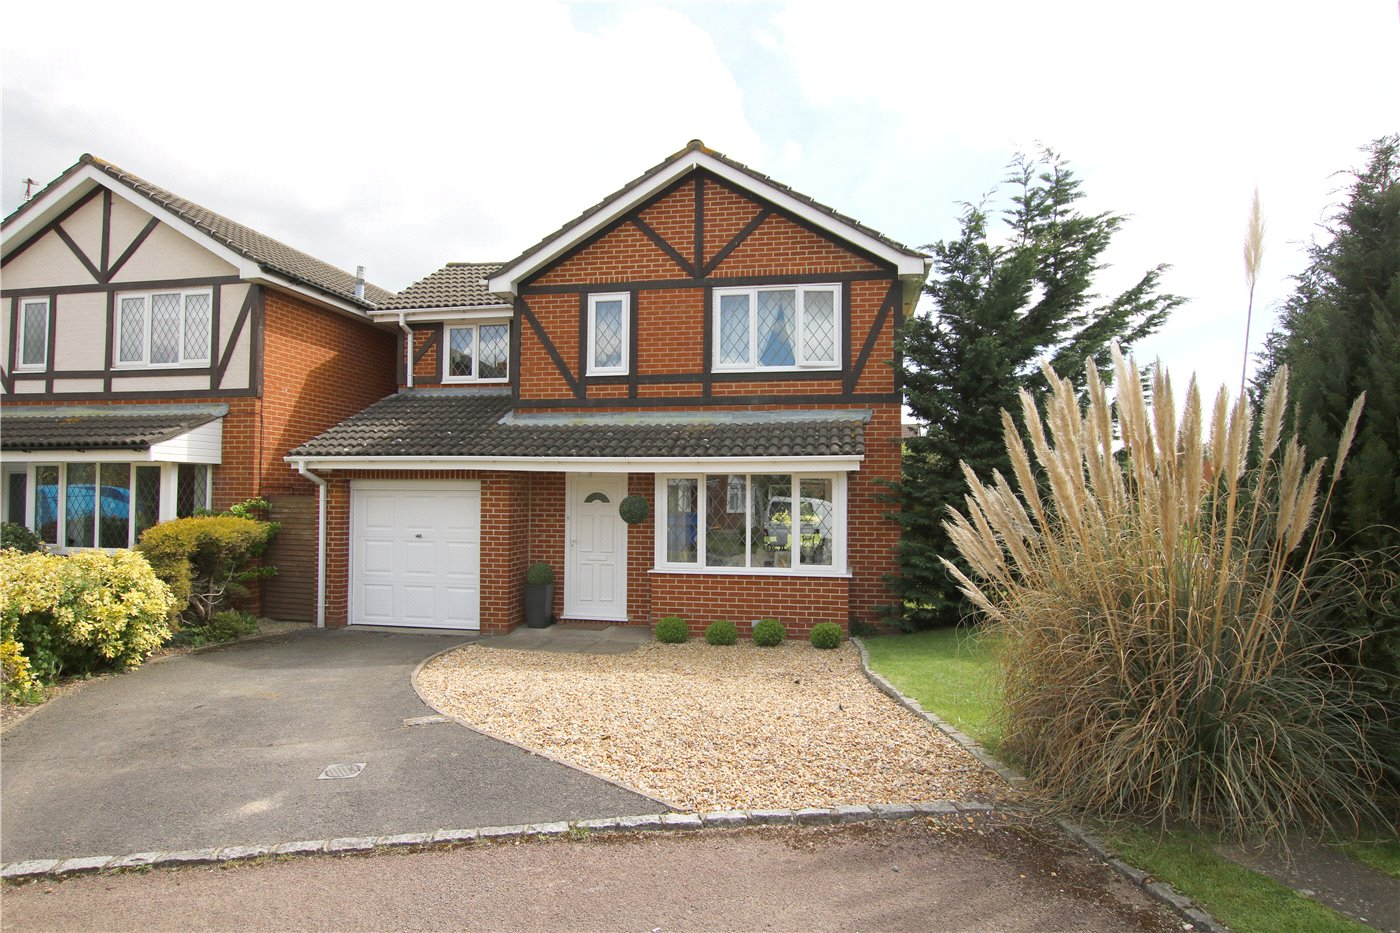 Merrifield Close, Reading, RG6 - £535,000 Freehold